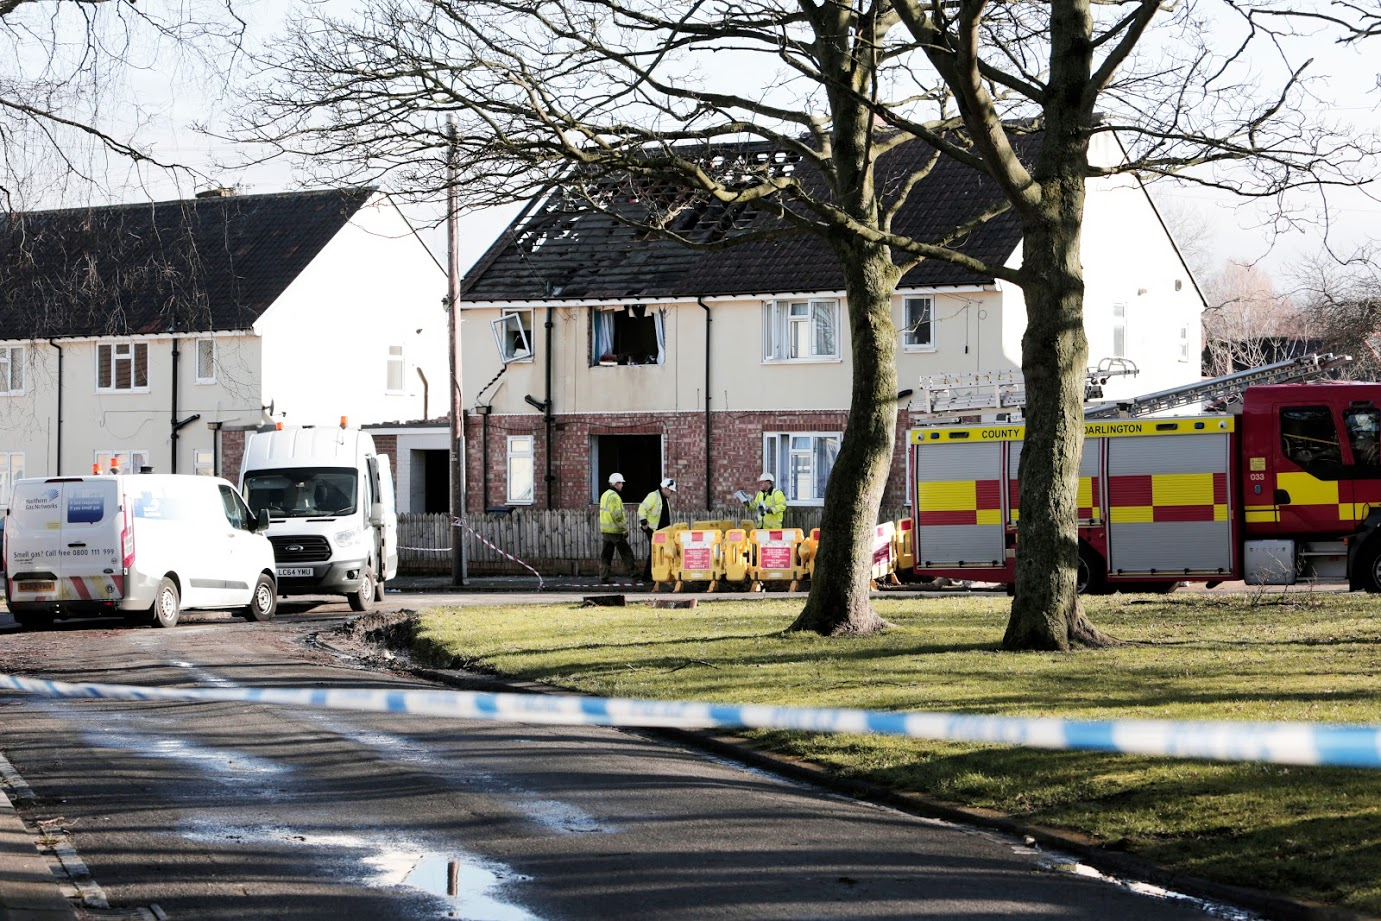 Man remains in 'critical condition' after Darlington house blast